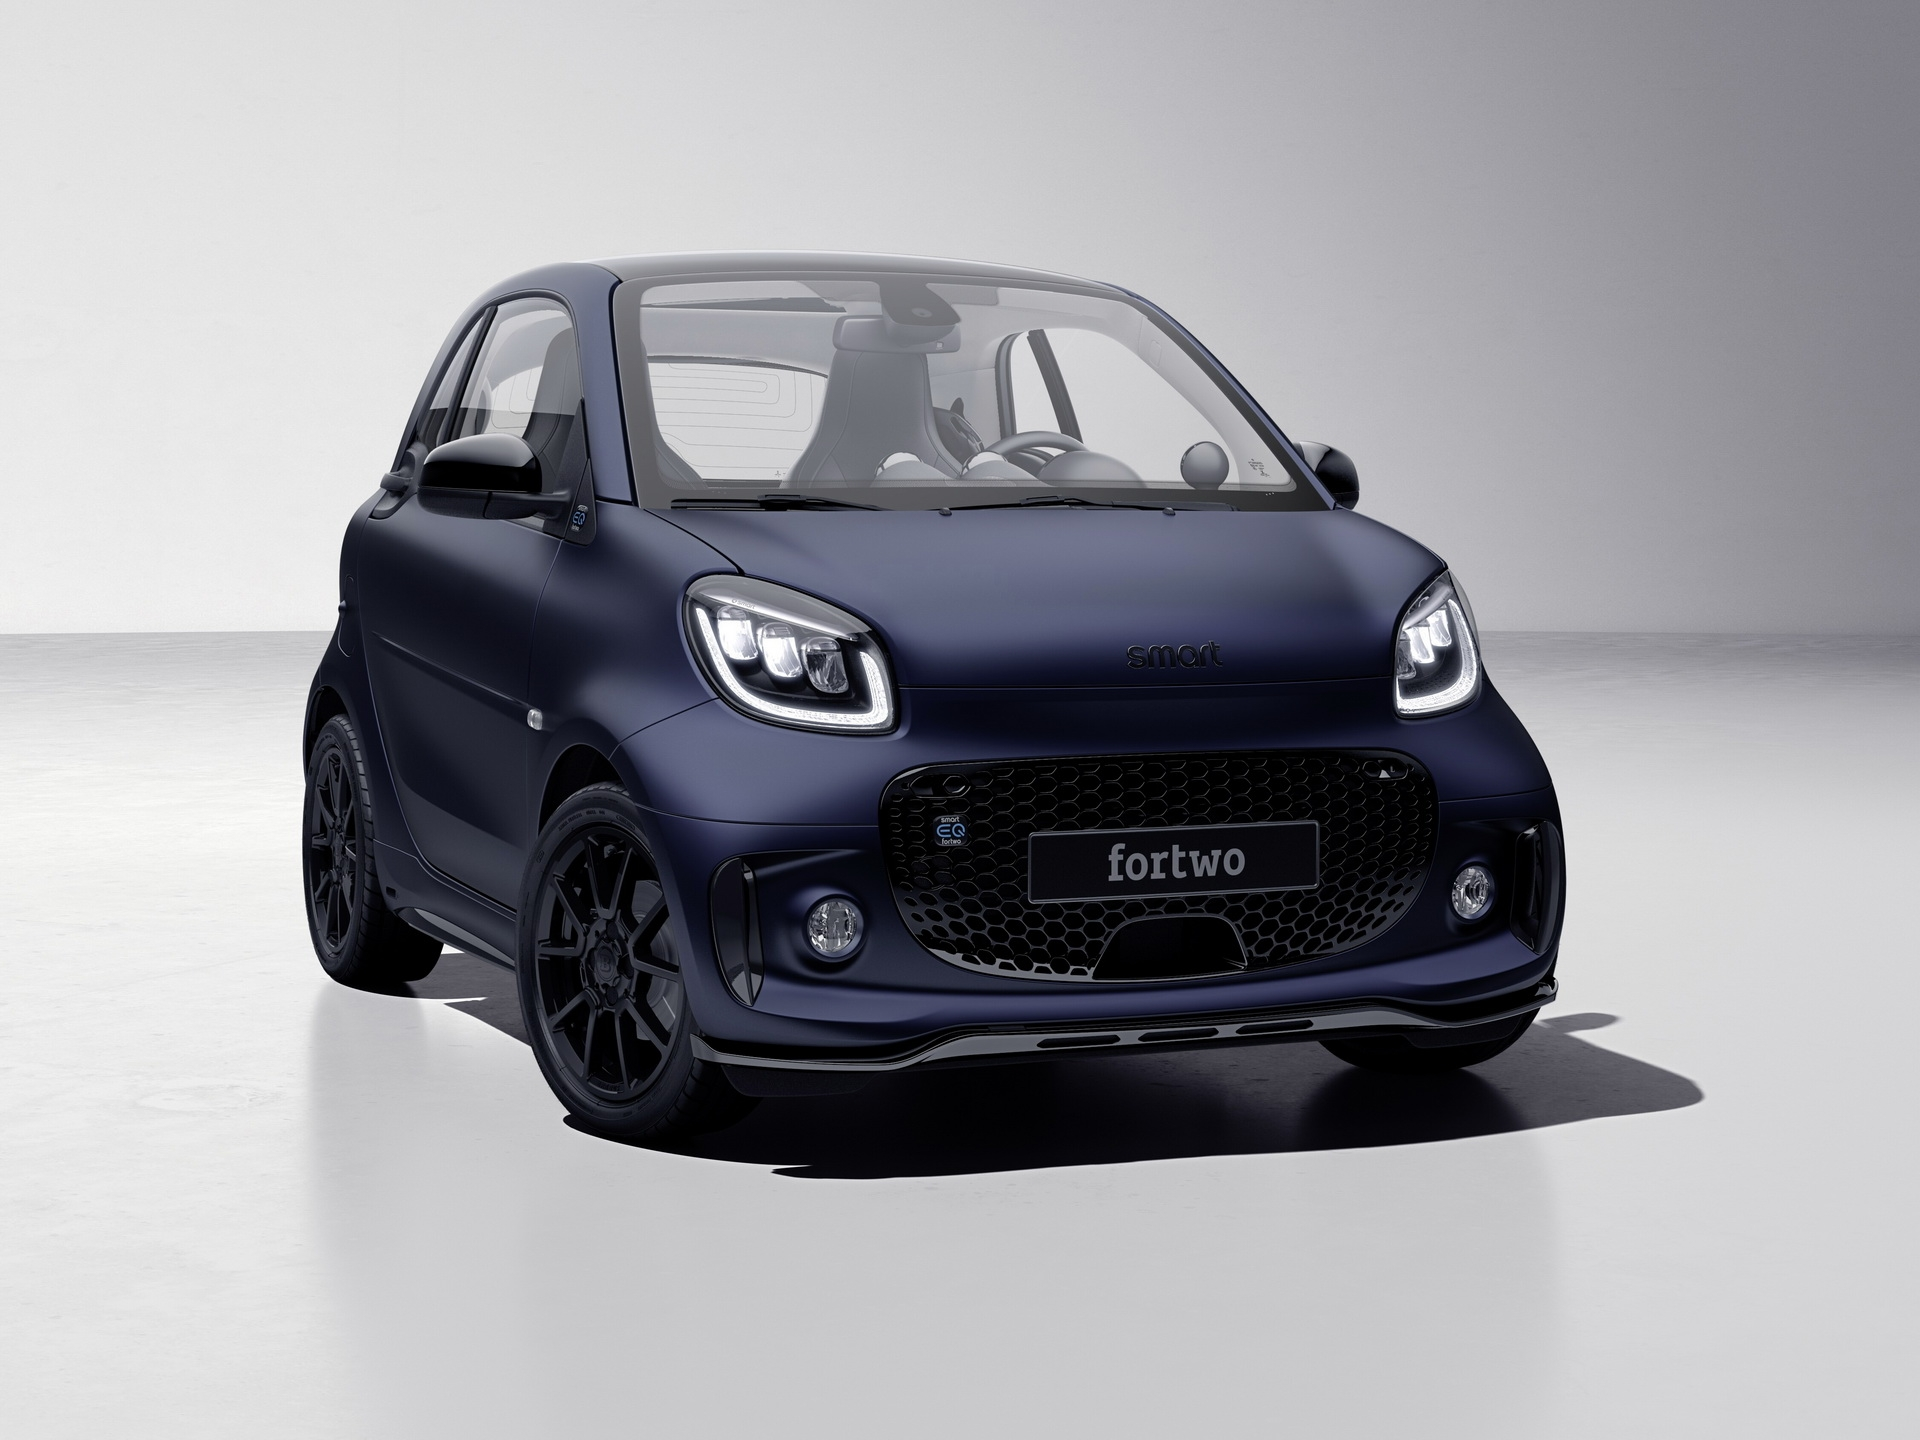 Smart EQ fortwo edition bluedawn city car